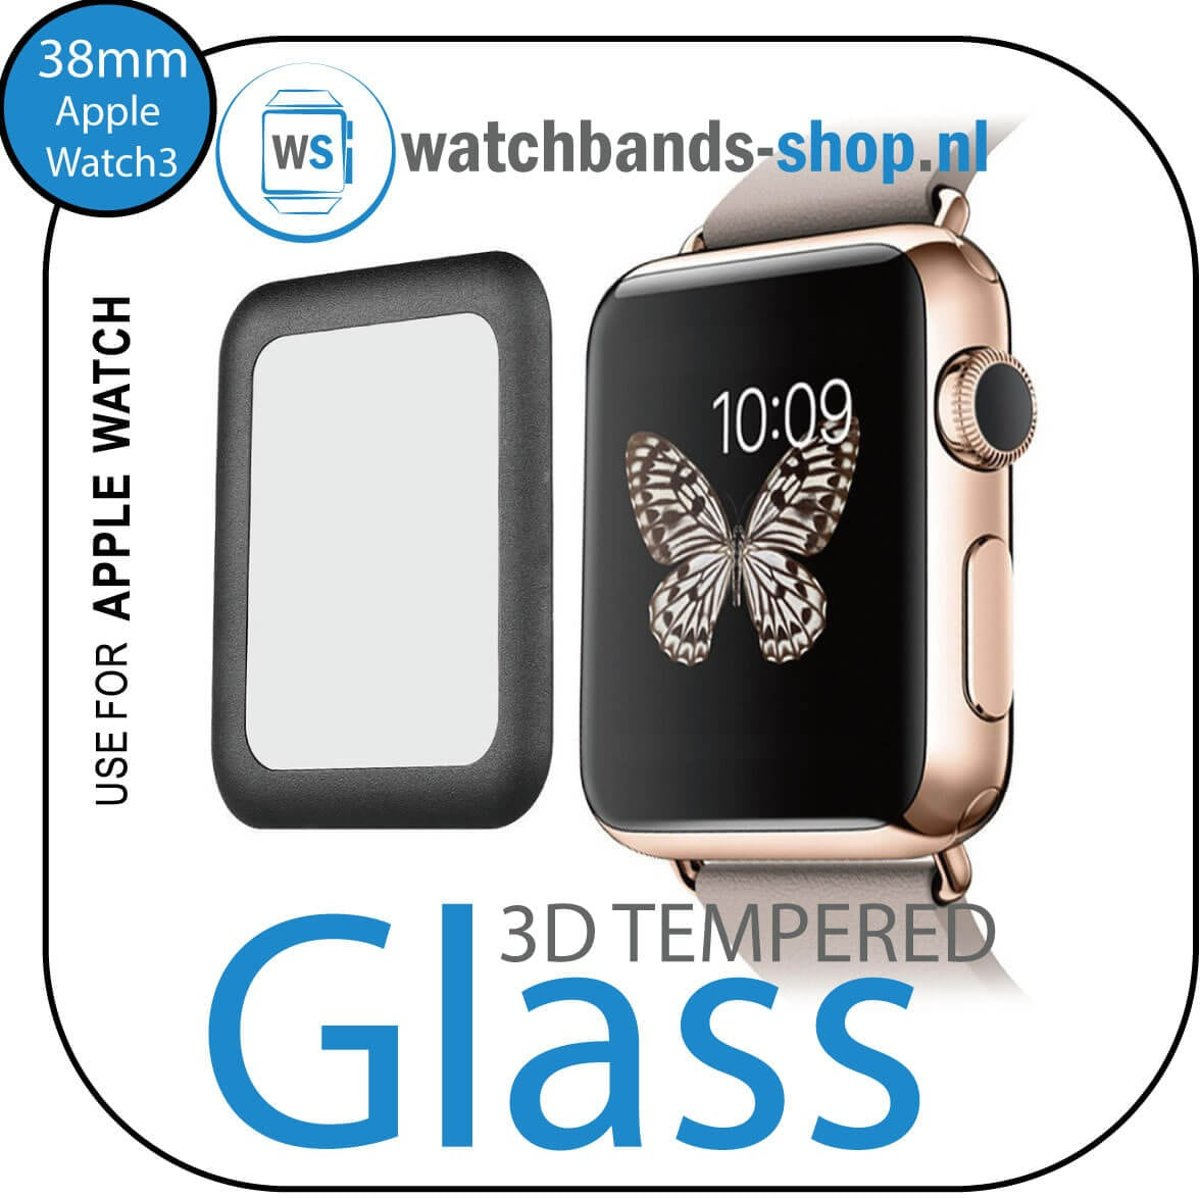 38mm full Cover 3D Tempered Glass Screen Protector For Apple watch / iWatch 3 black edge Watchbands-shop.nl kopen